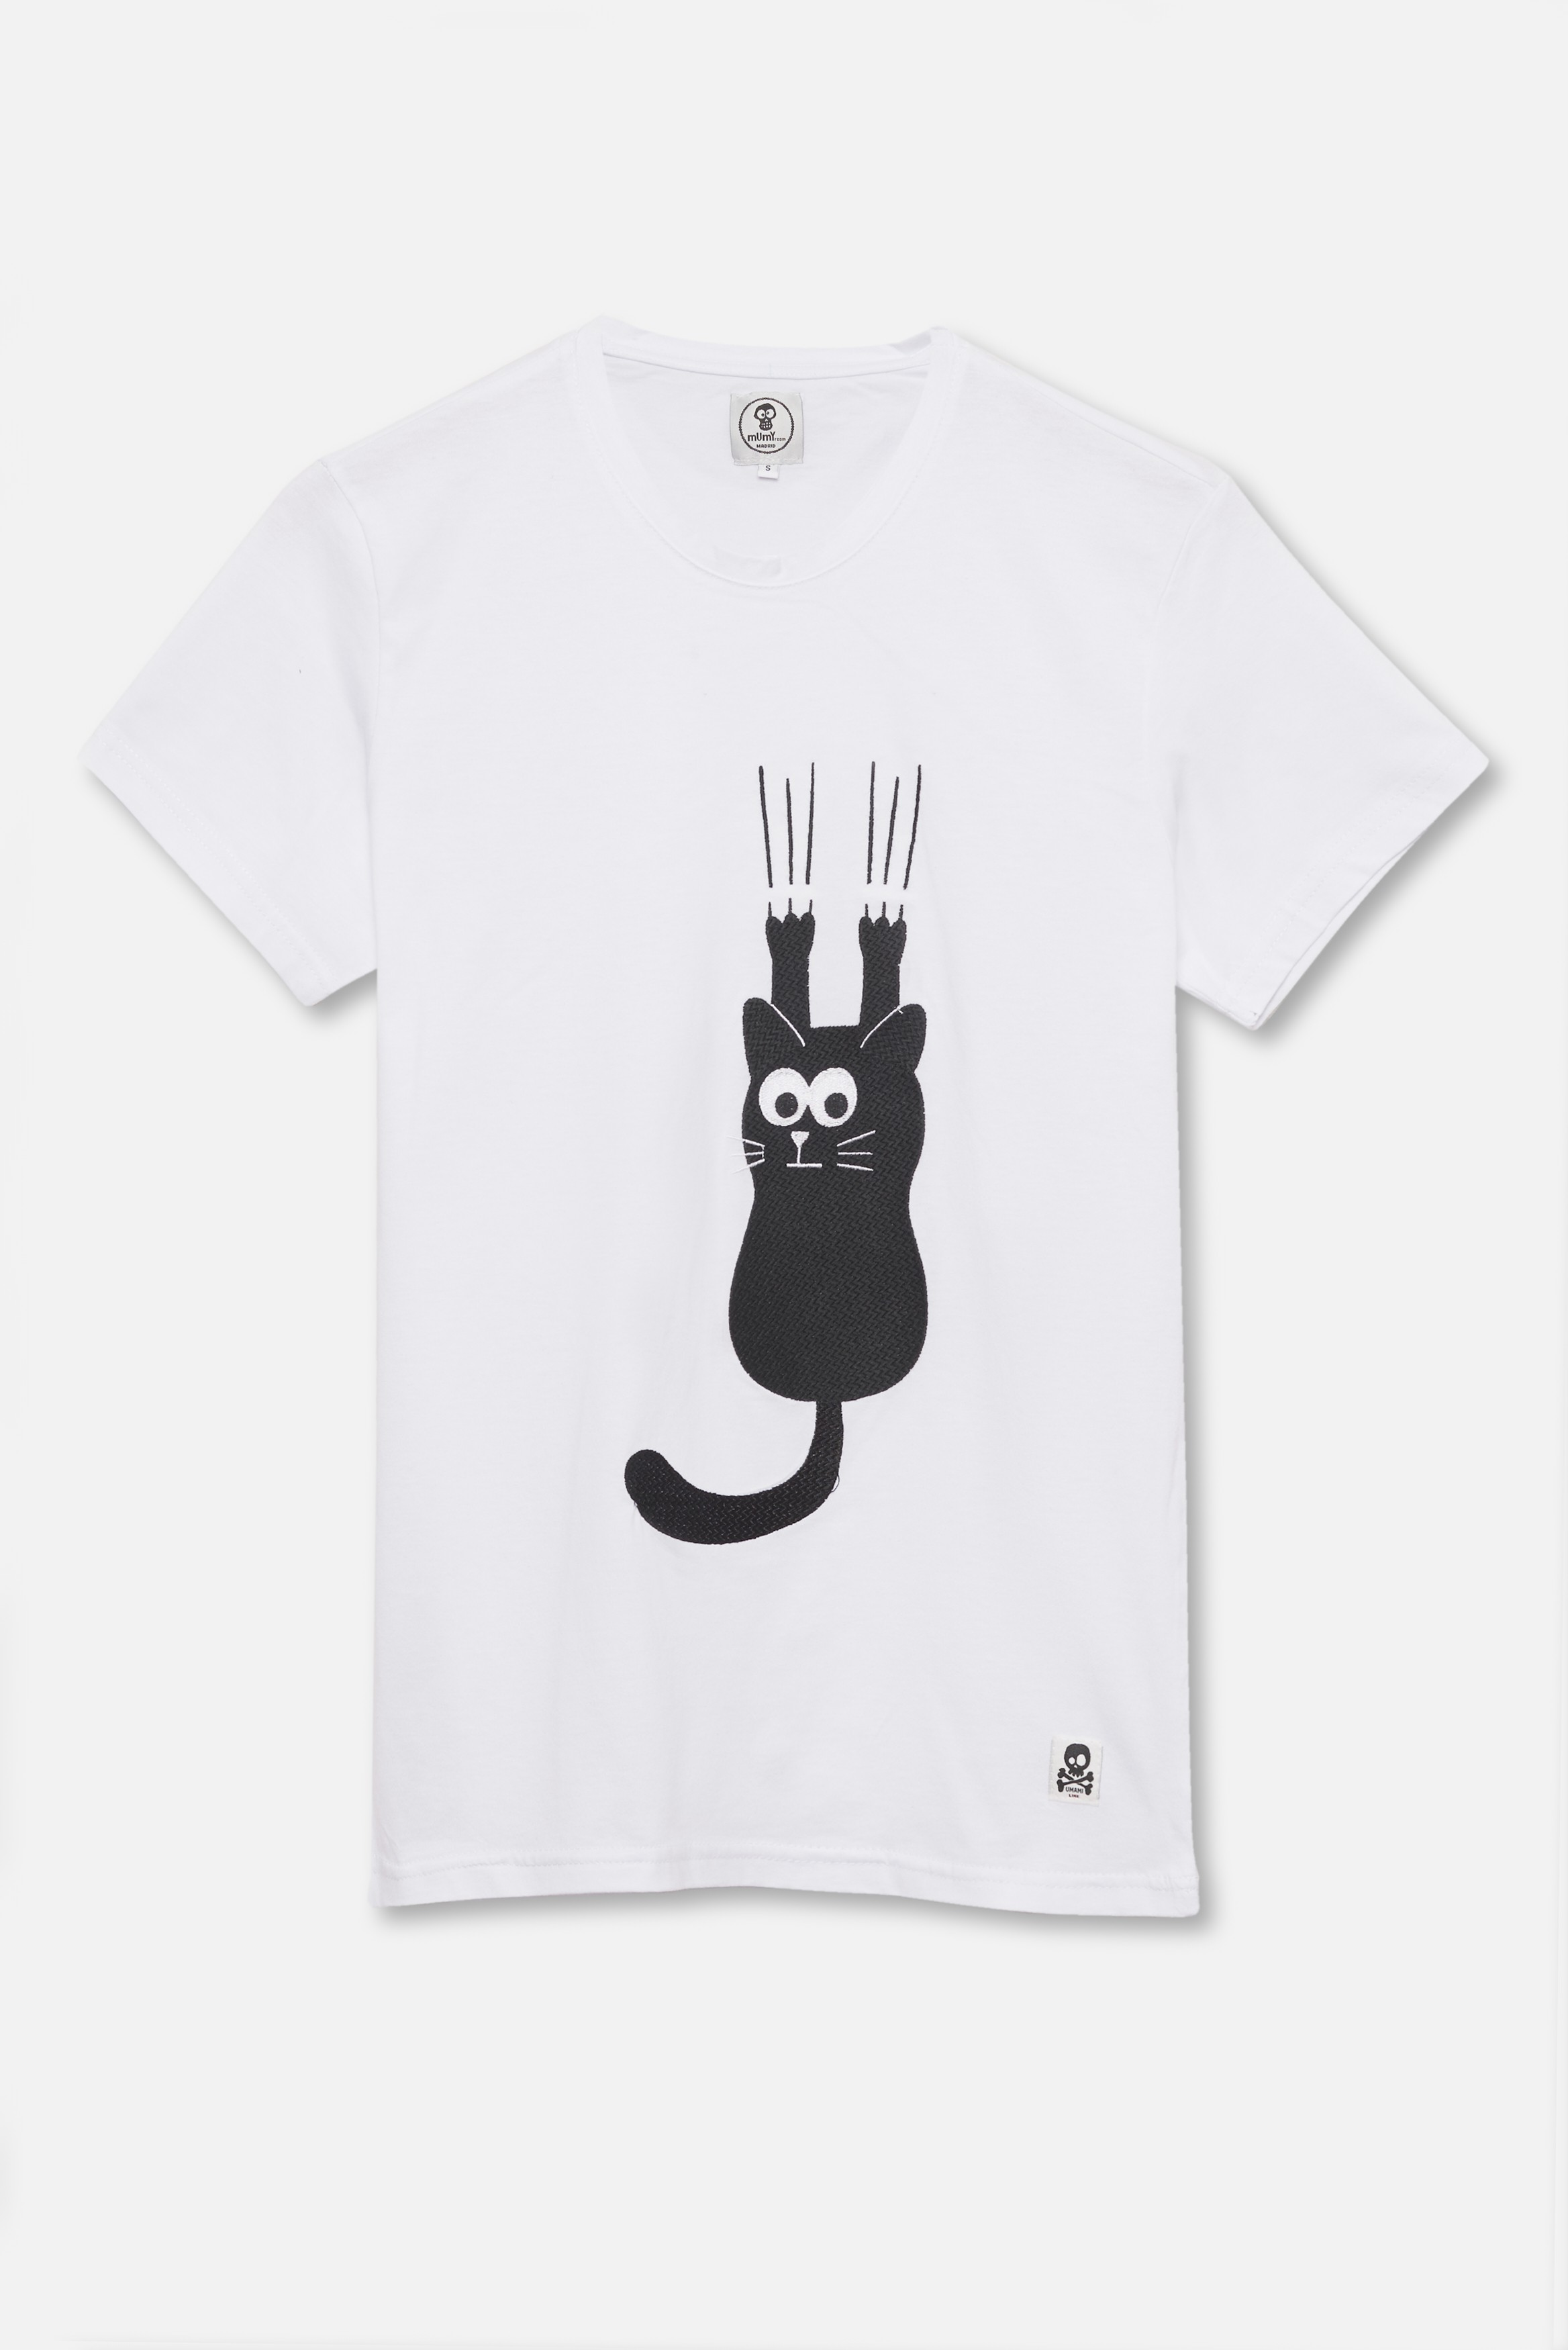 ADULT´S PRINTED T-SHIRT CAT SCRATCH IN WHITE